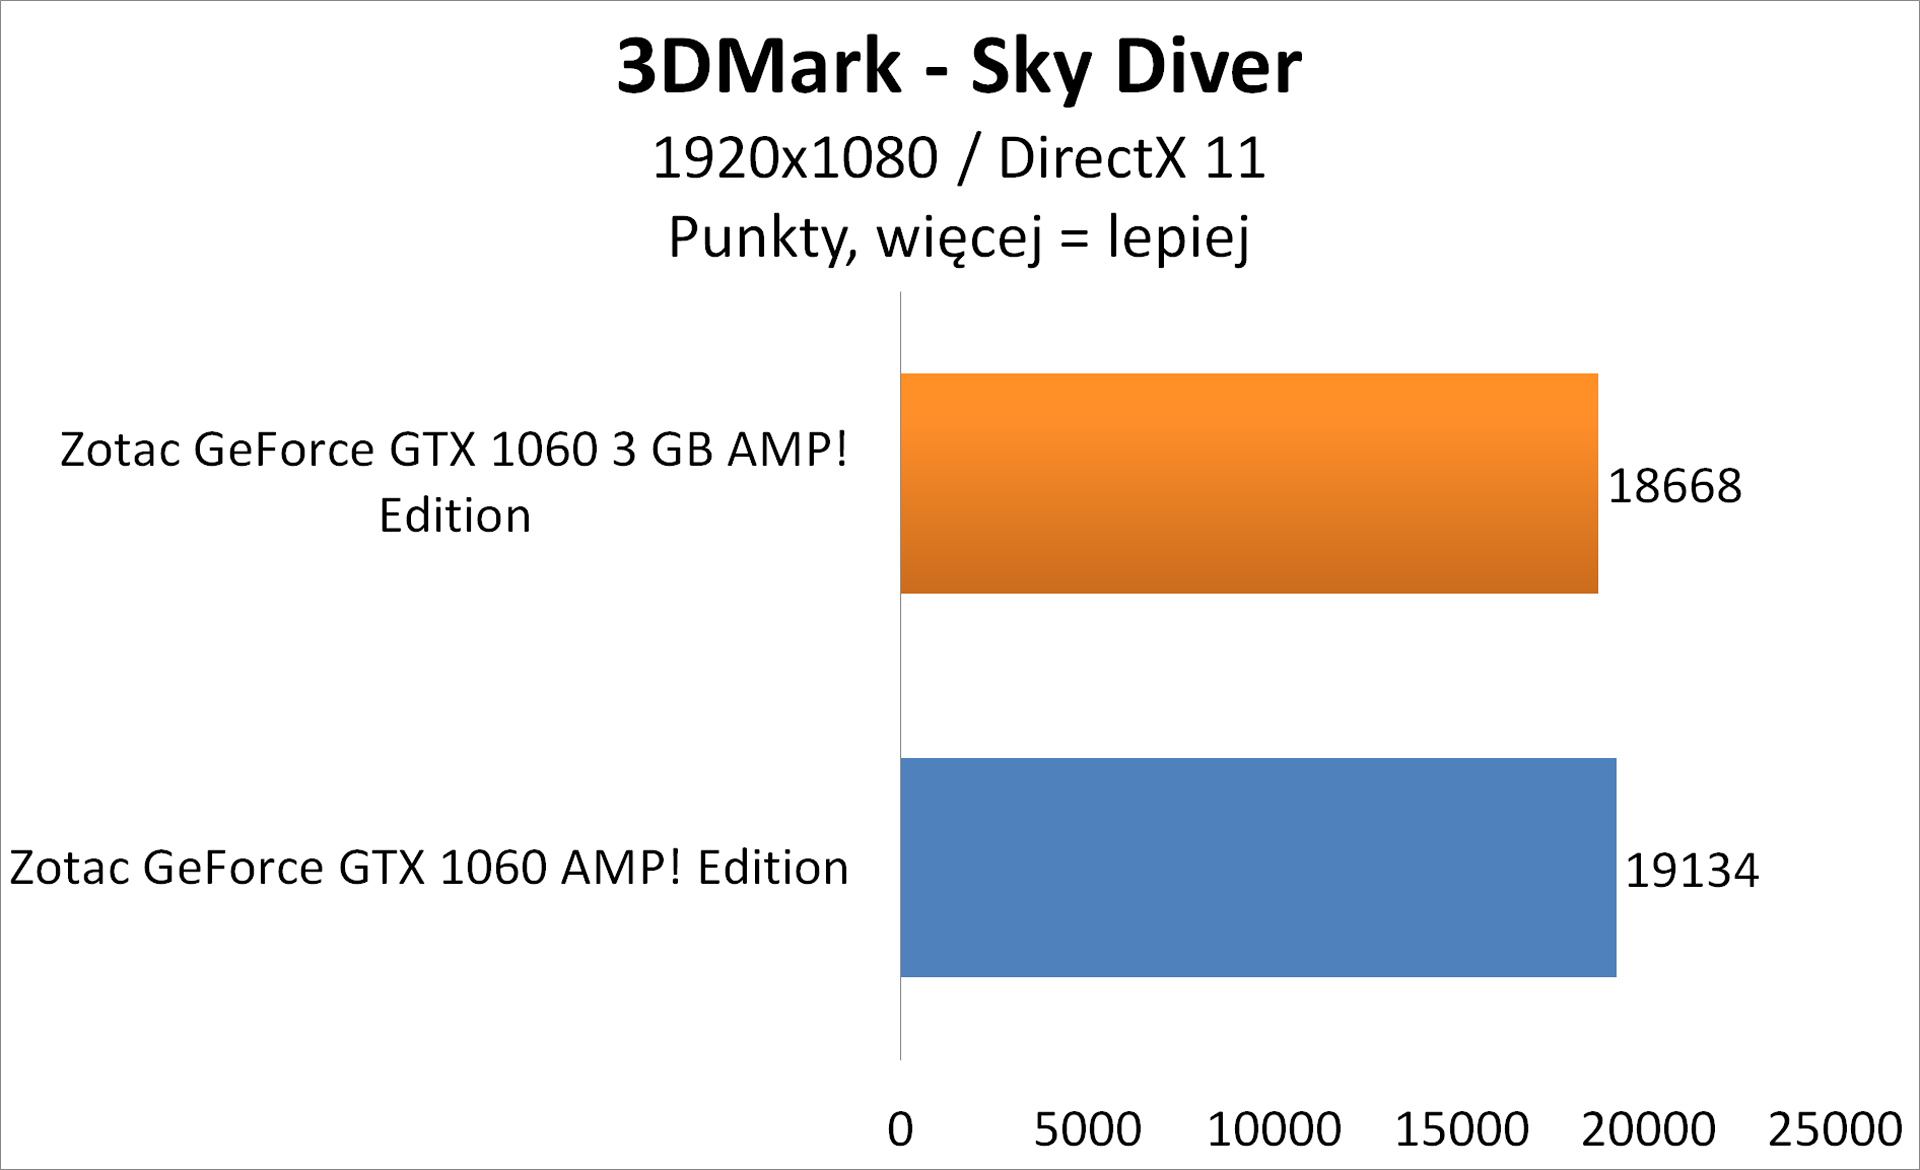 Zotac GeForce GTX 1060 3GB AMP Edition 3DMark Sky Diver